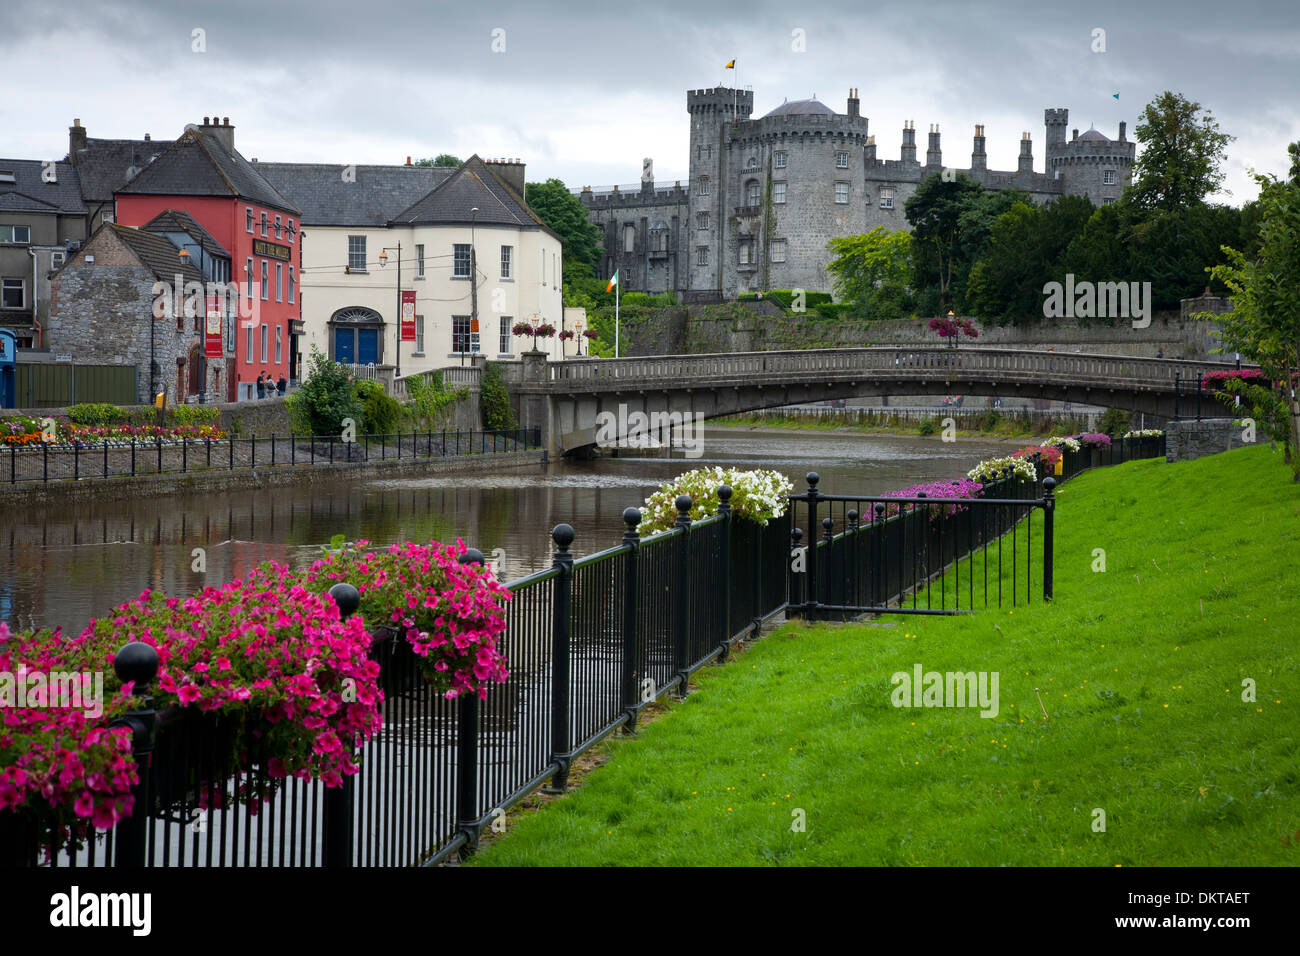 Castle and Nore river. - Stock Image